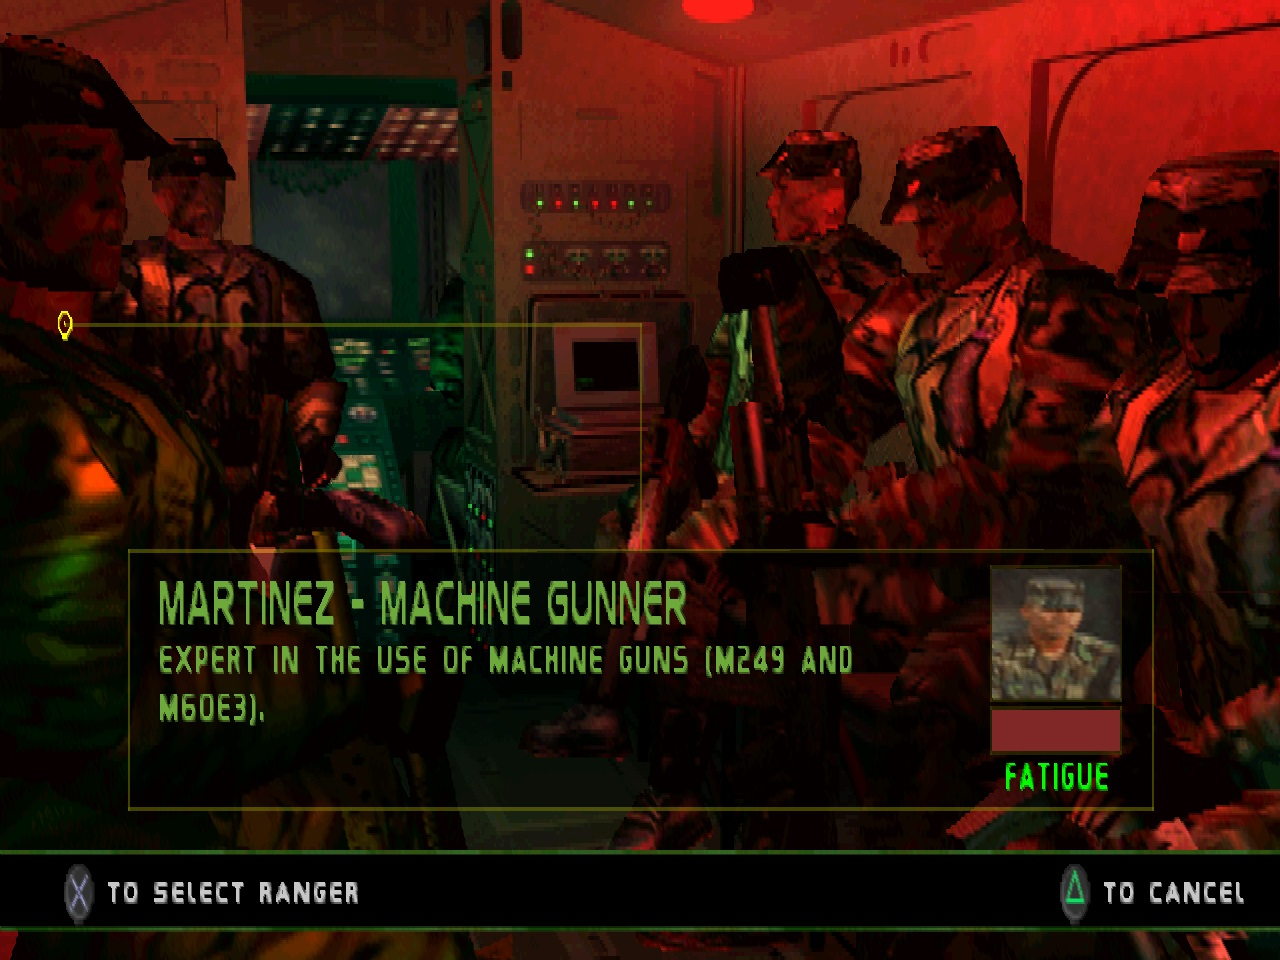 spec ops ps1 ntsc-us viper4life full game free pc, download